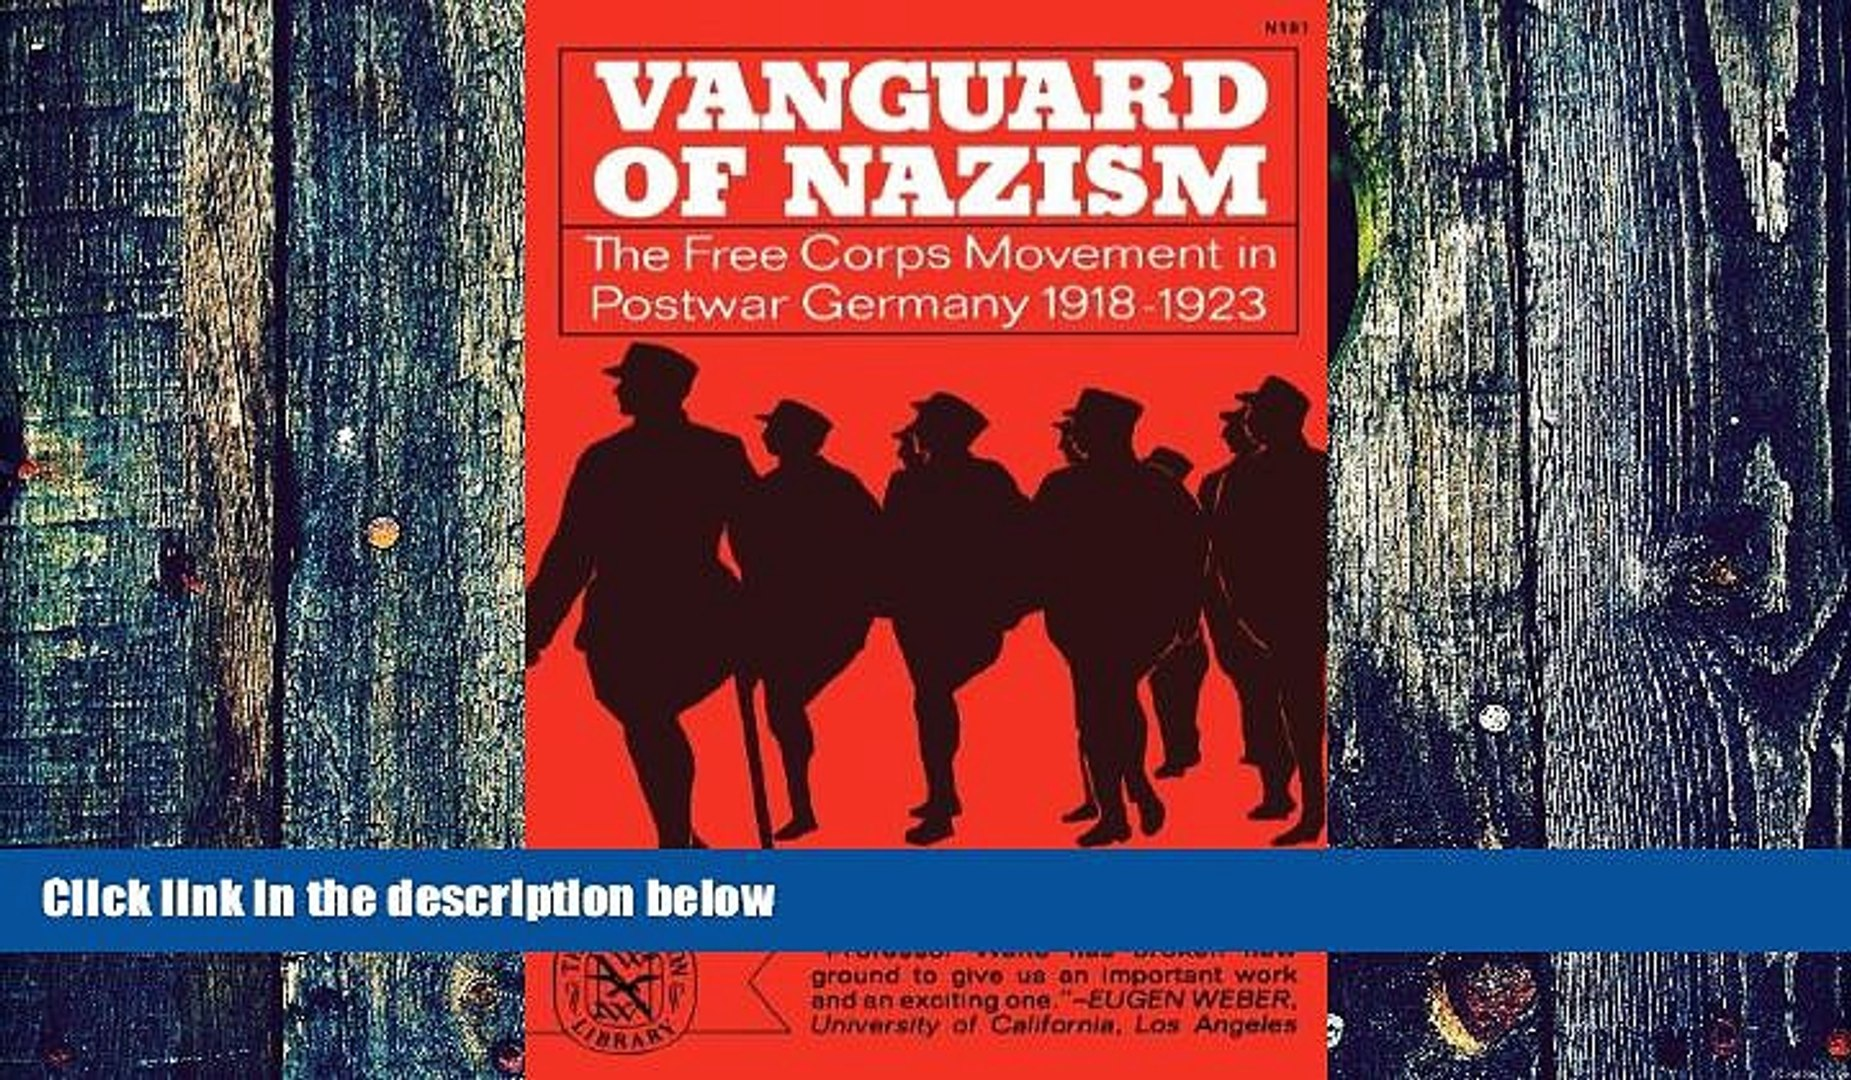 PDF Robert G. Waite Vanguard of Nazism: The Free Corps Movement in Postwar Germany 1918-1923  Pre